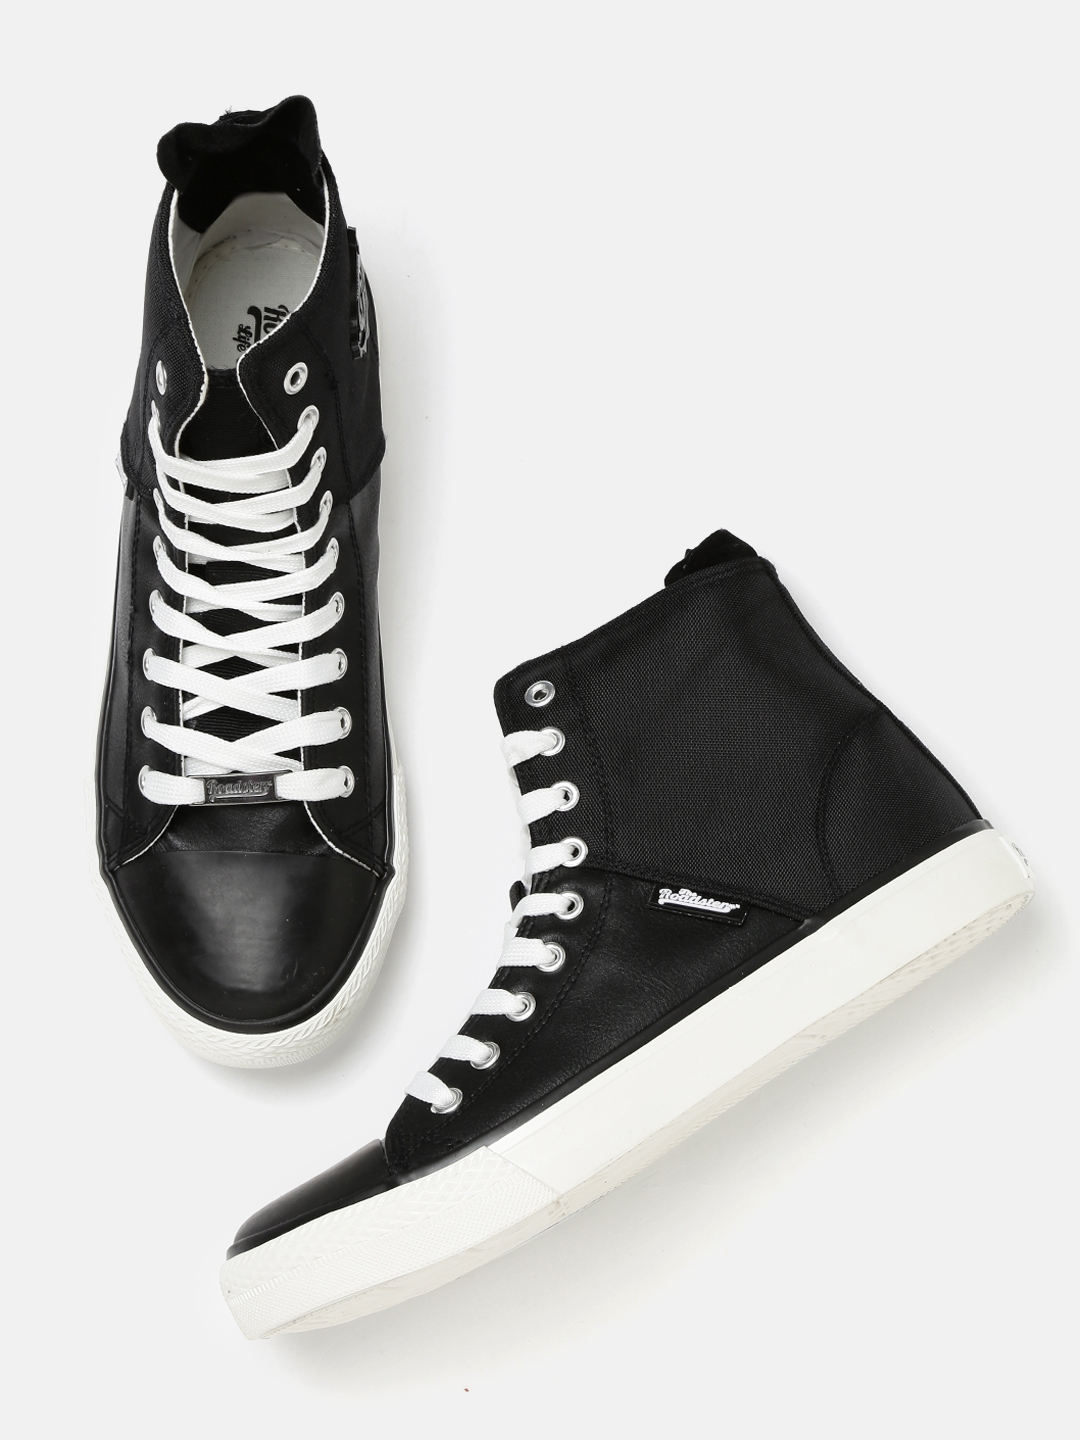 6563dbc8d8e Buy Roadster Men Black Textured High Top Sneakers - Casual Shoes for ...